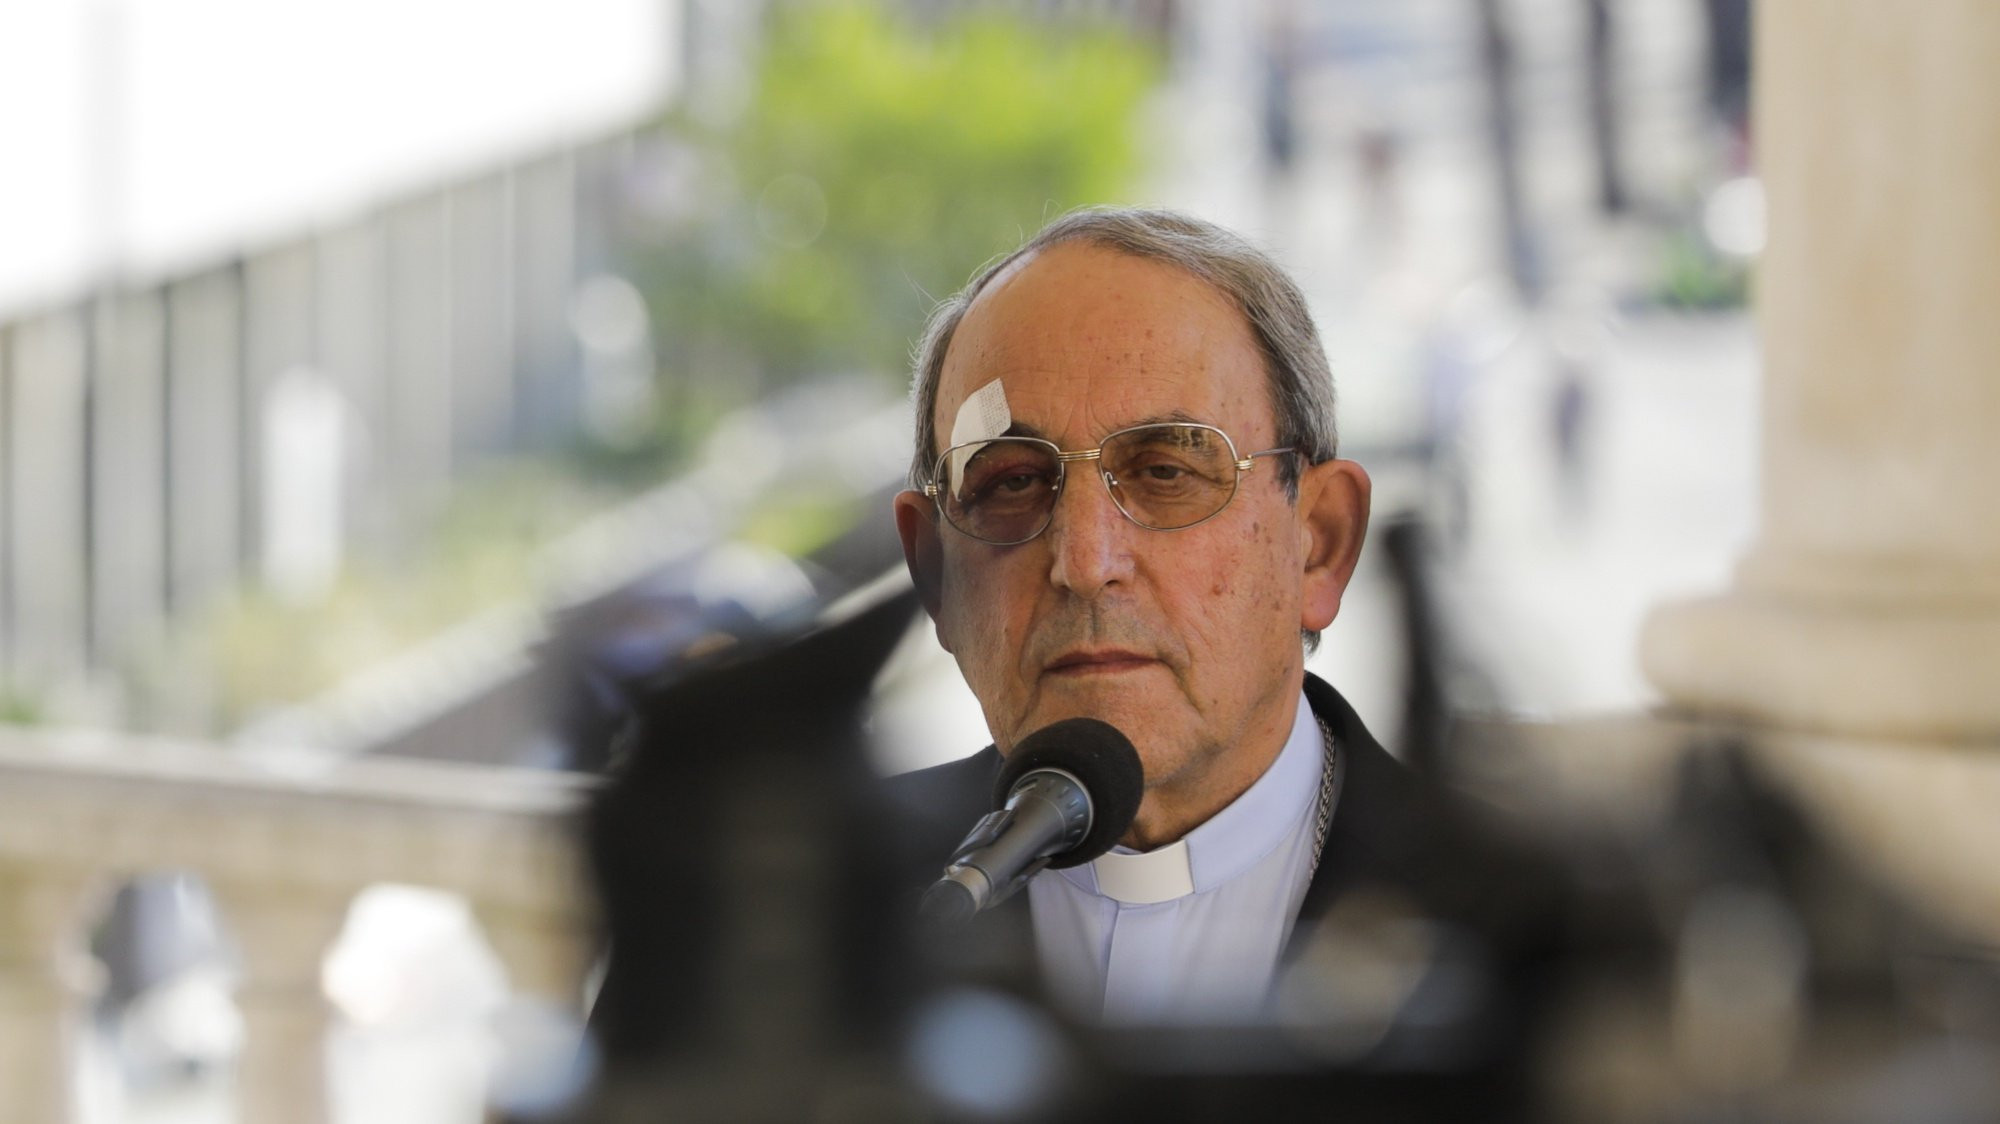 """The Bishop of Leiria and Fatima, Cardinal Antonio Marto, takes part in the press conference preceding the October Pilgrimage at the Shrine of Fatima, Portugal, 12 October 2021. This pilgrimage, which celebrates the 6th Apparition of Our Lady, with particular emphasis on the so-called """"miracle of the Sun,"""" is the last major anniversary pilgrimage of a pastoral year still very much marked by the pandemic. PAULO CUNHA /LUSA"""